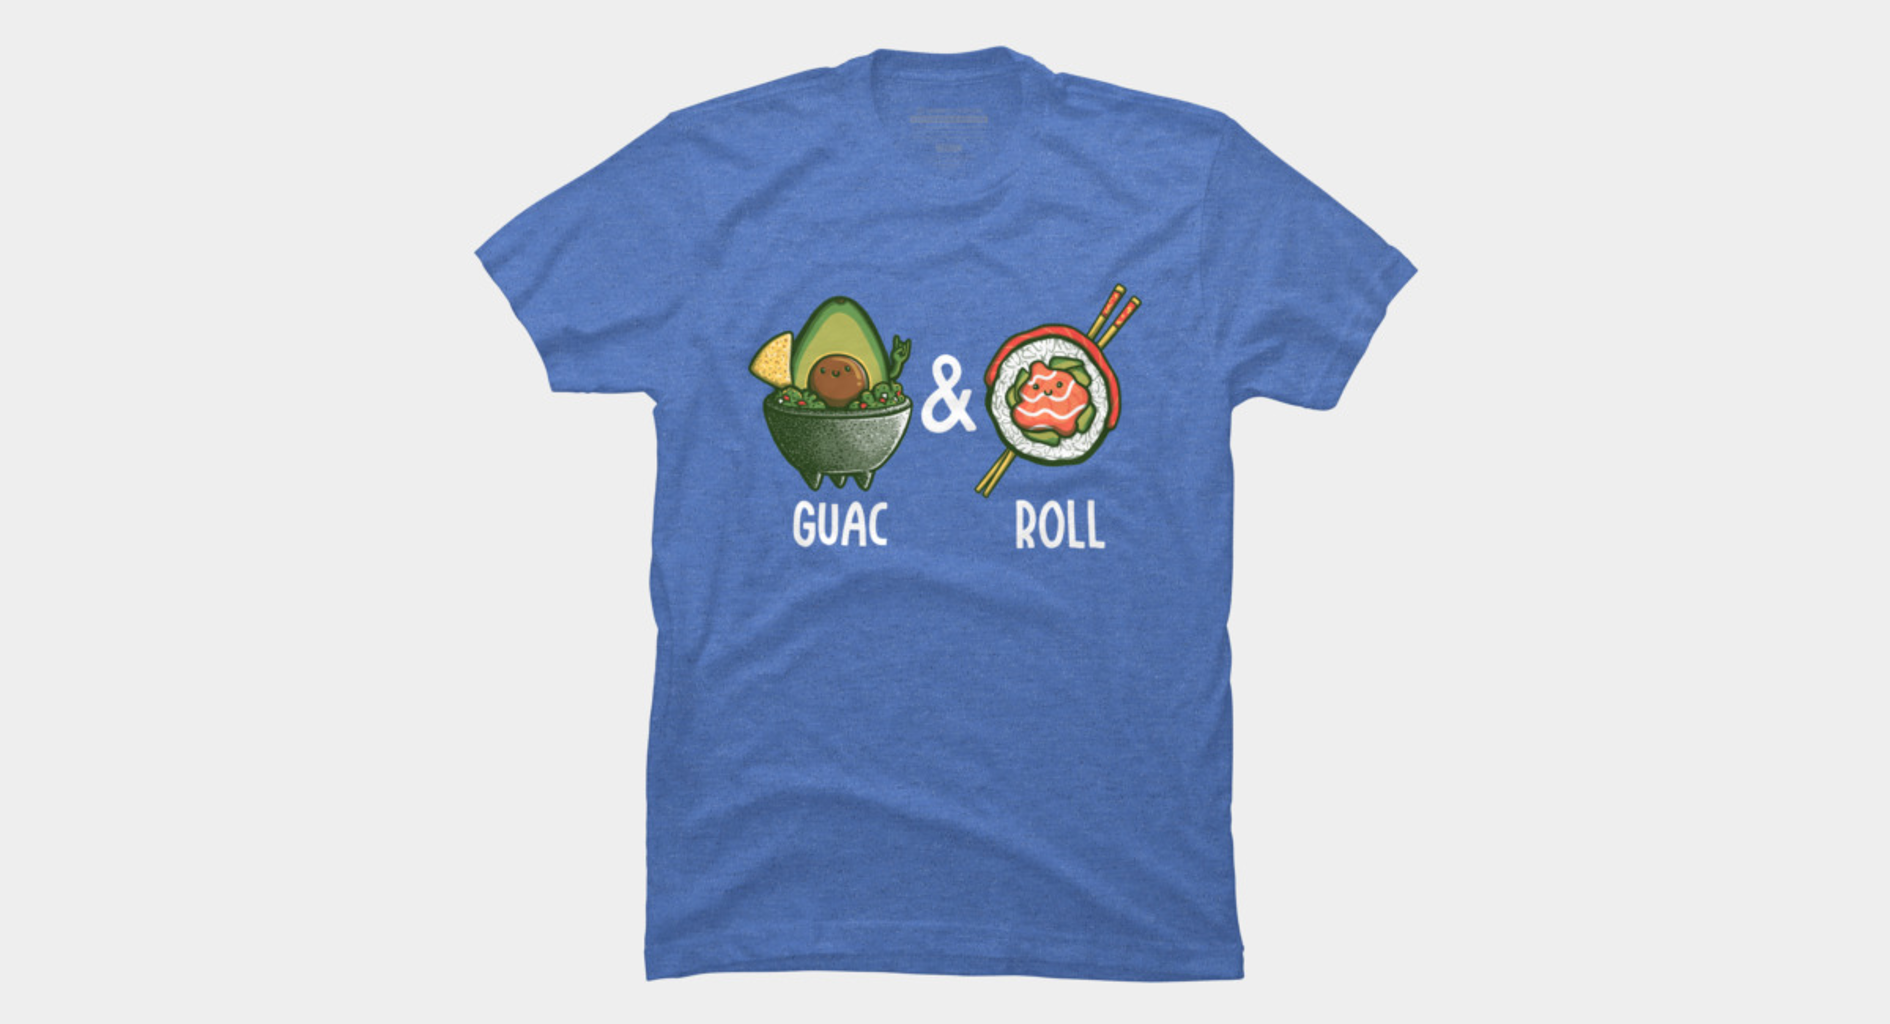 Design by Humans: Guac & Roll